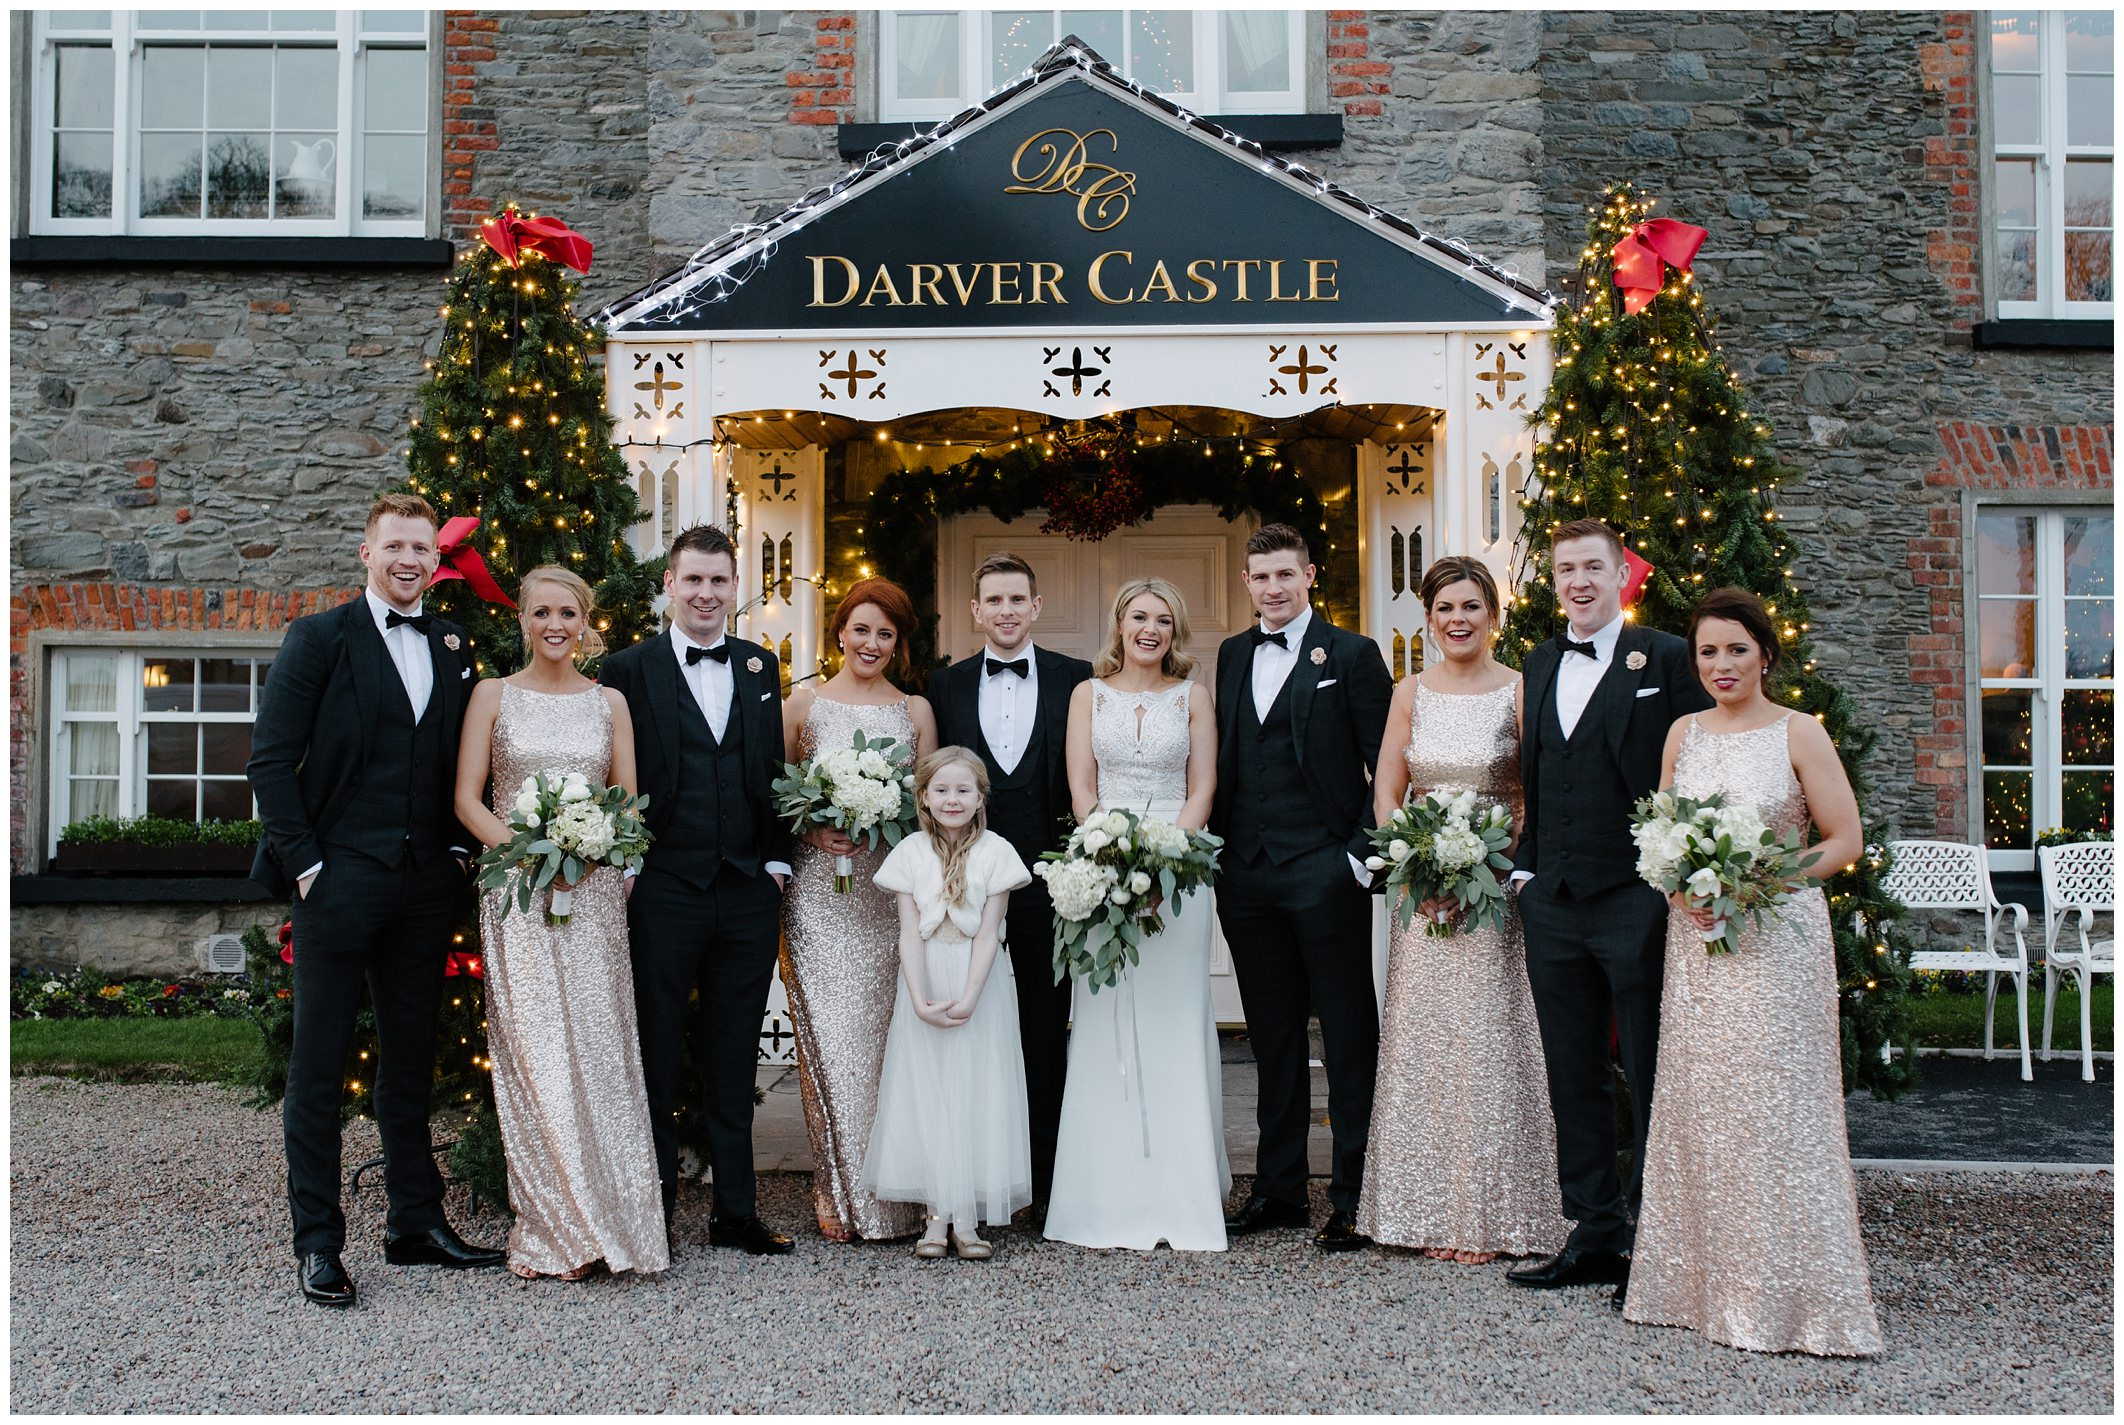 jade_donal_darver_castle_wedding_jude_browne_photography_0092.jpg